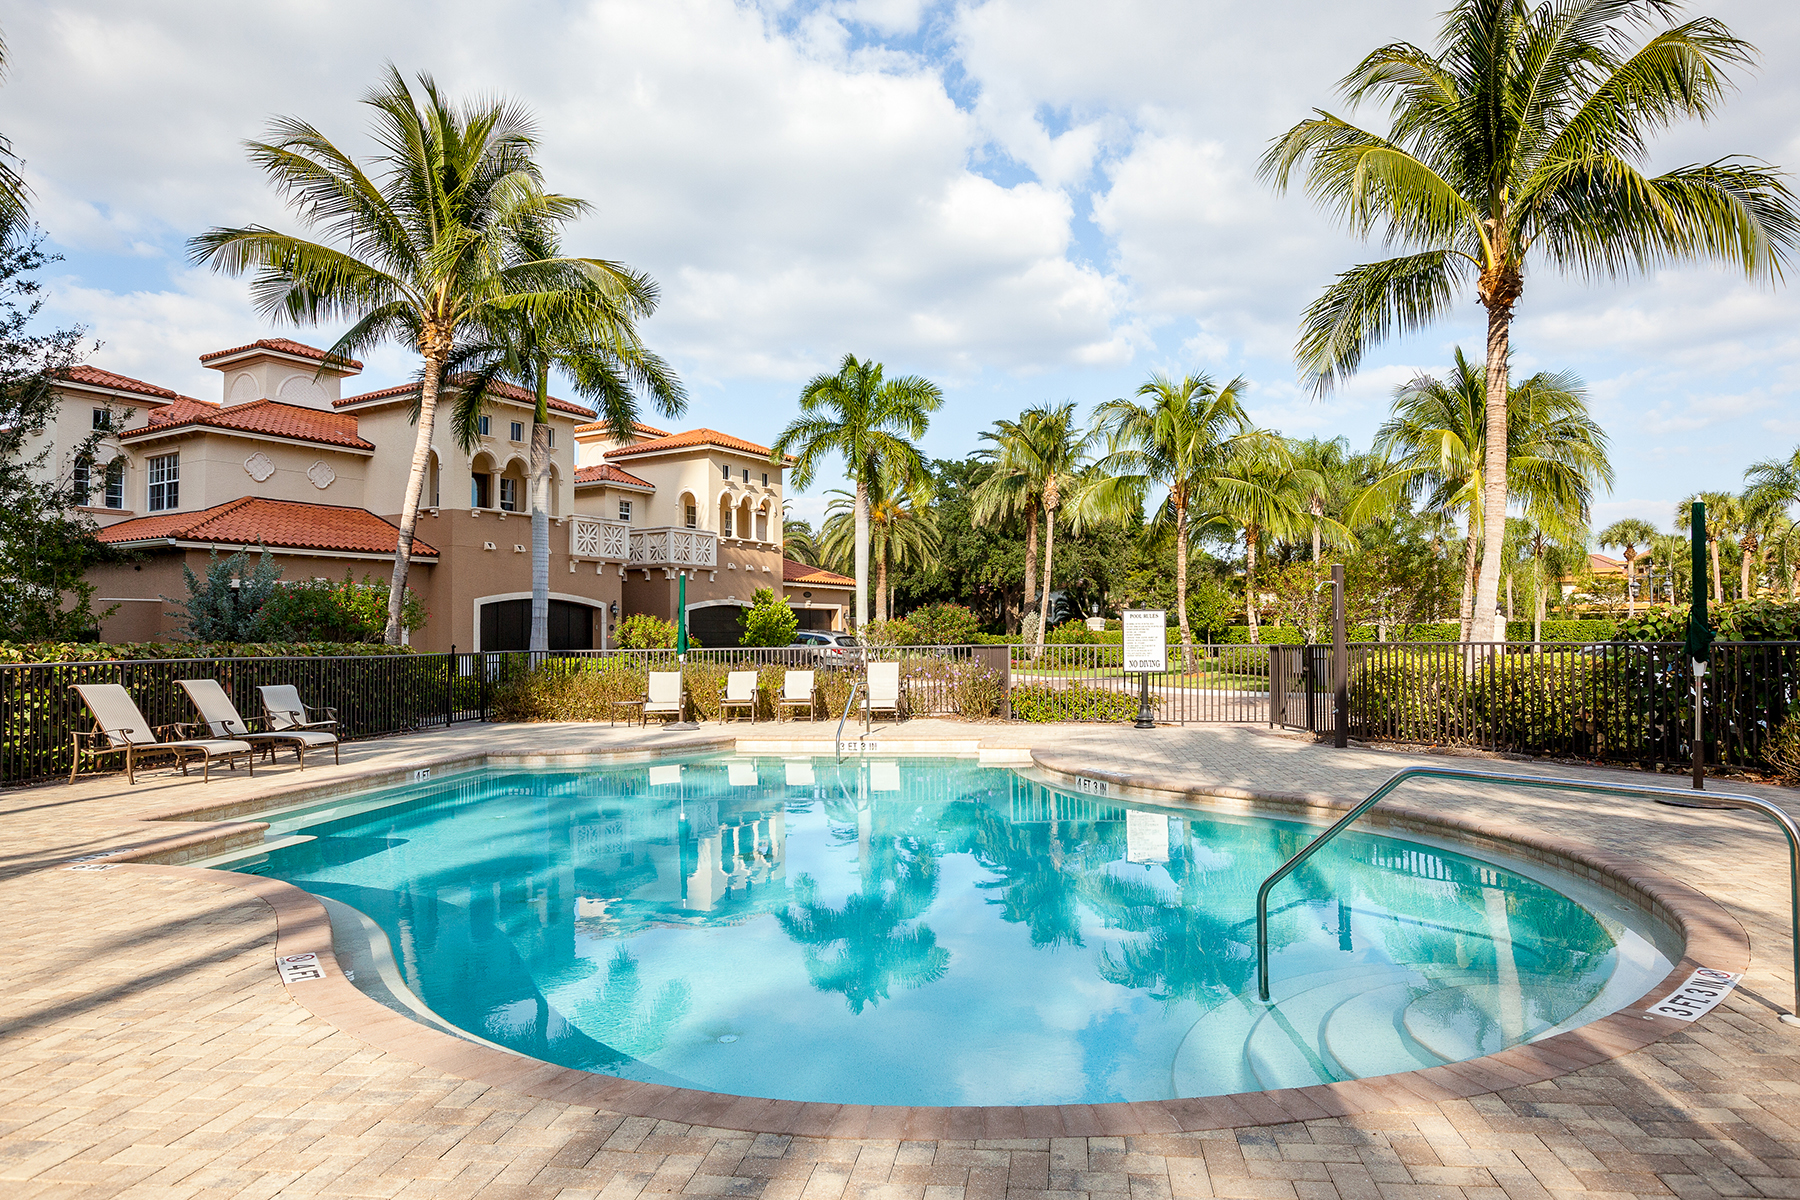 Condomínio para Venda às PELICAN BAY - CANNES 6501 Crown Colony Pl 4-201 Naples, Florida, 34108 Estados Unidos